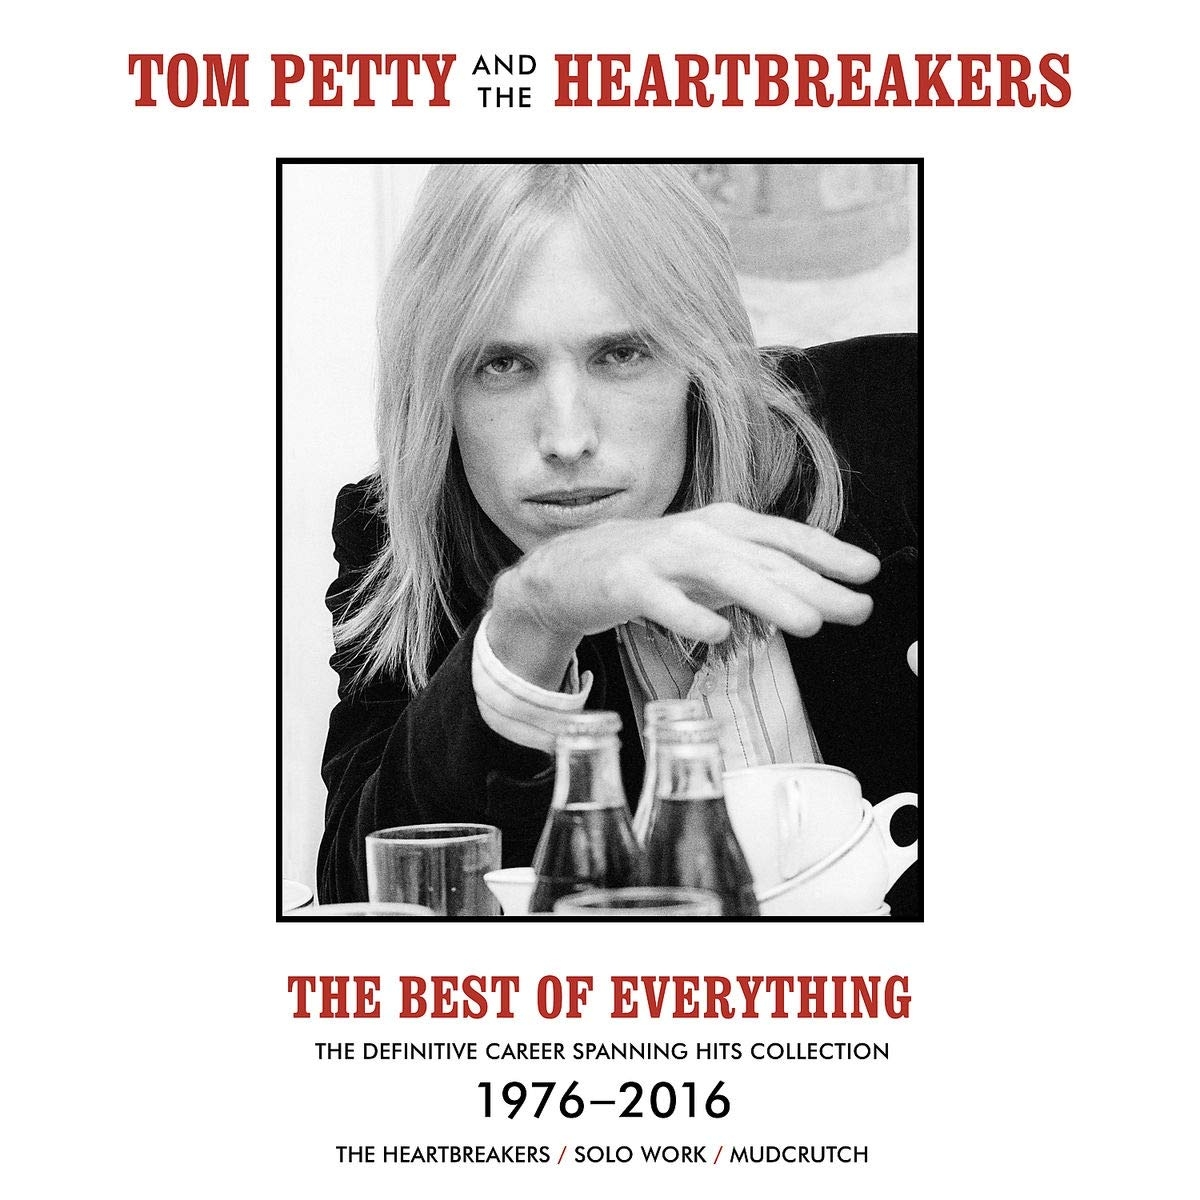 catalog 02 19 Tom Petty